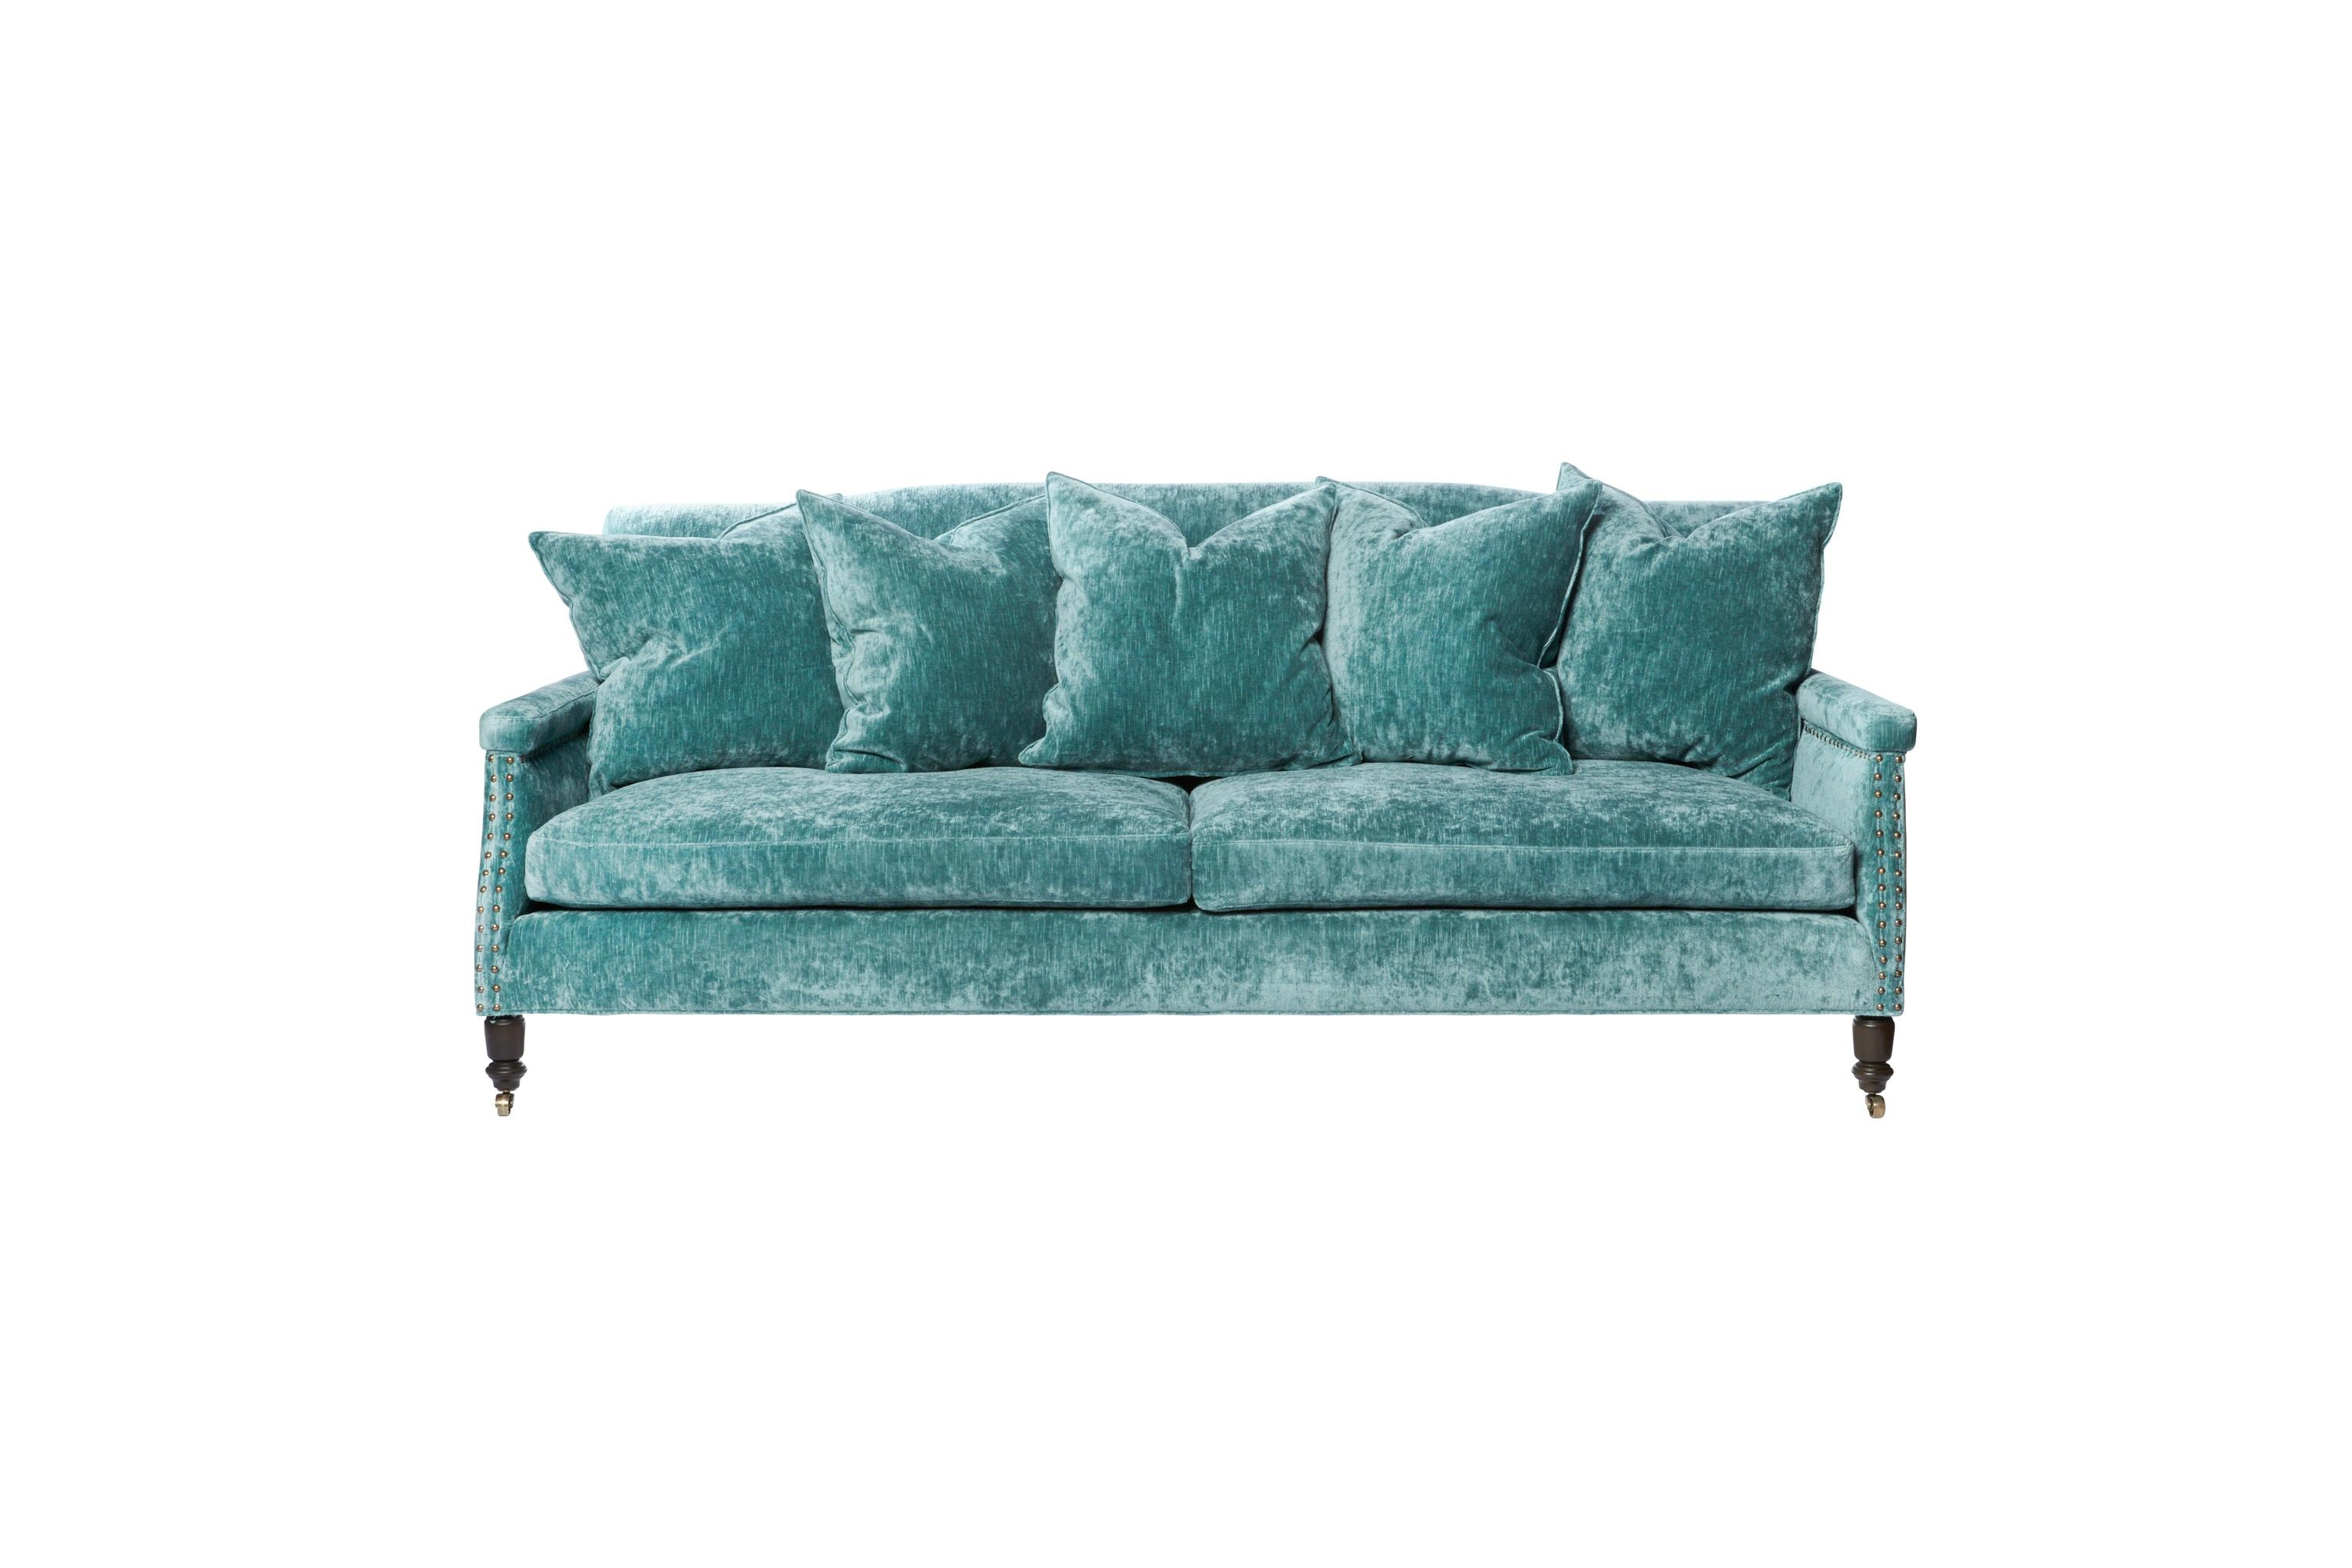 Sofas Pertaining To Teal Sofa Slipcovers (Image 19 of 20)